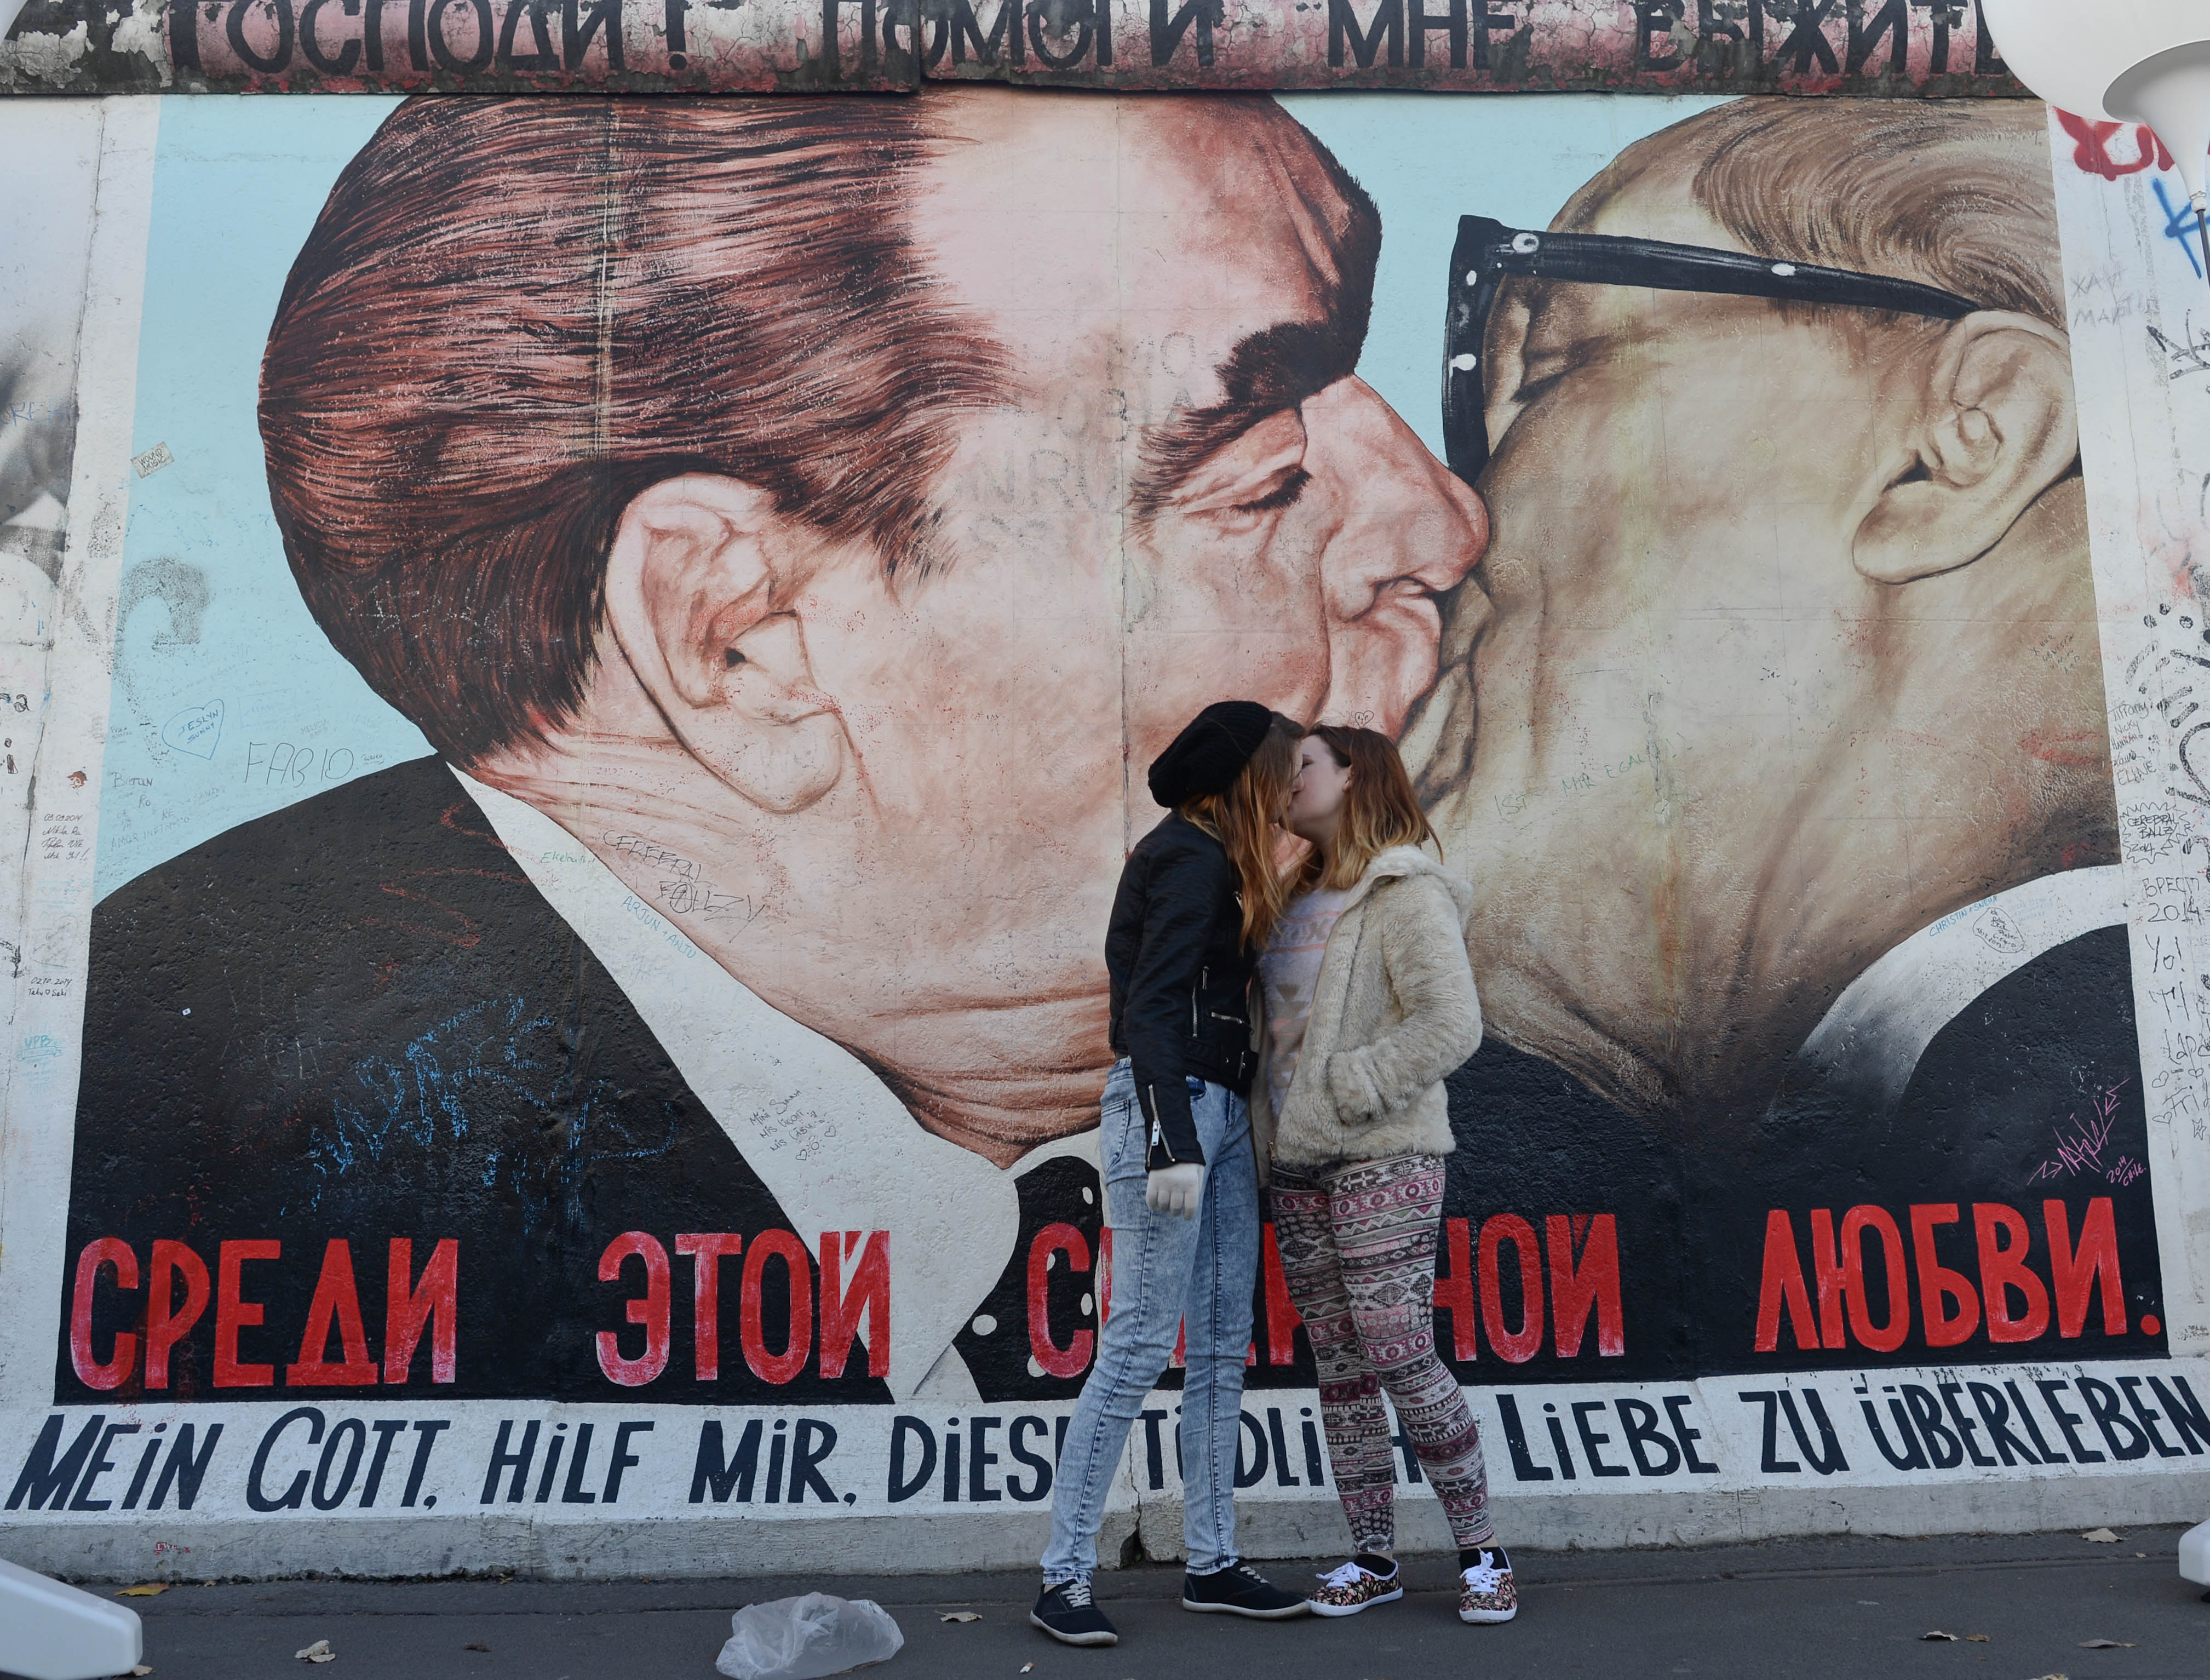 Brezhnev kissing Honecker, painting by Dmitri Vrubel25th Anniversary of the fall of the Berlin Wall commemoration in Berlin, Germany - 08 Nov 2014Thousands of tourists from all around the world arrive for the Celebrations to mark the 25th anniversary of the fall of the Berlin Wall